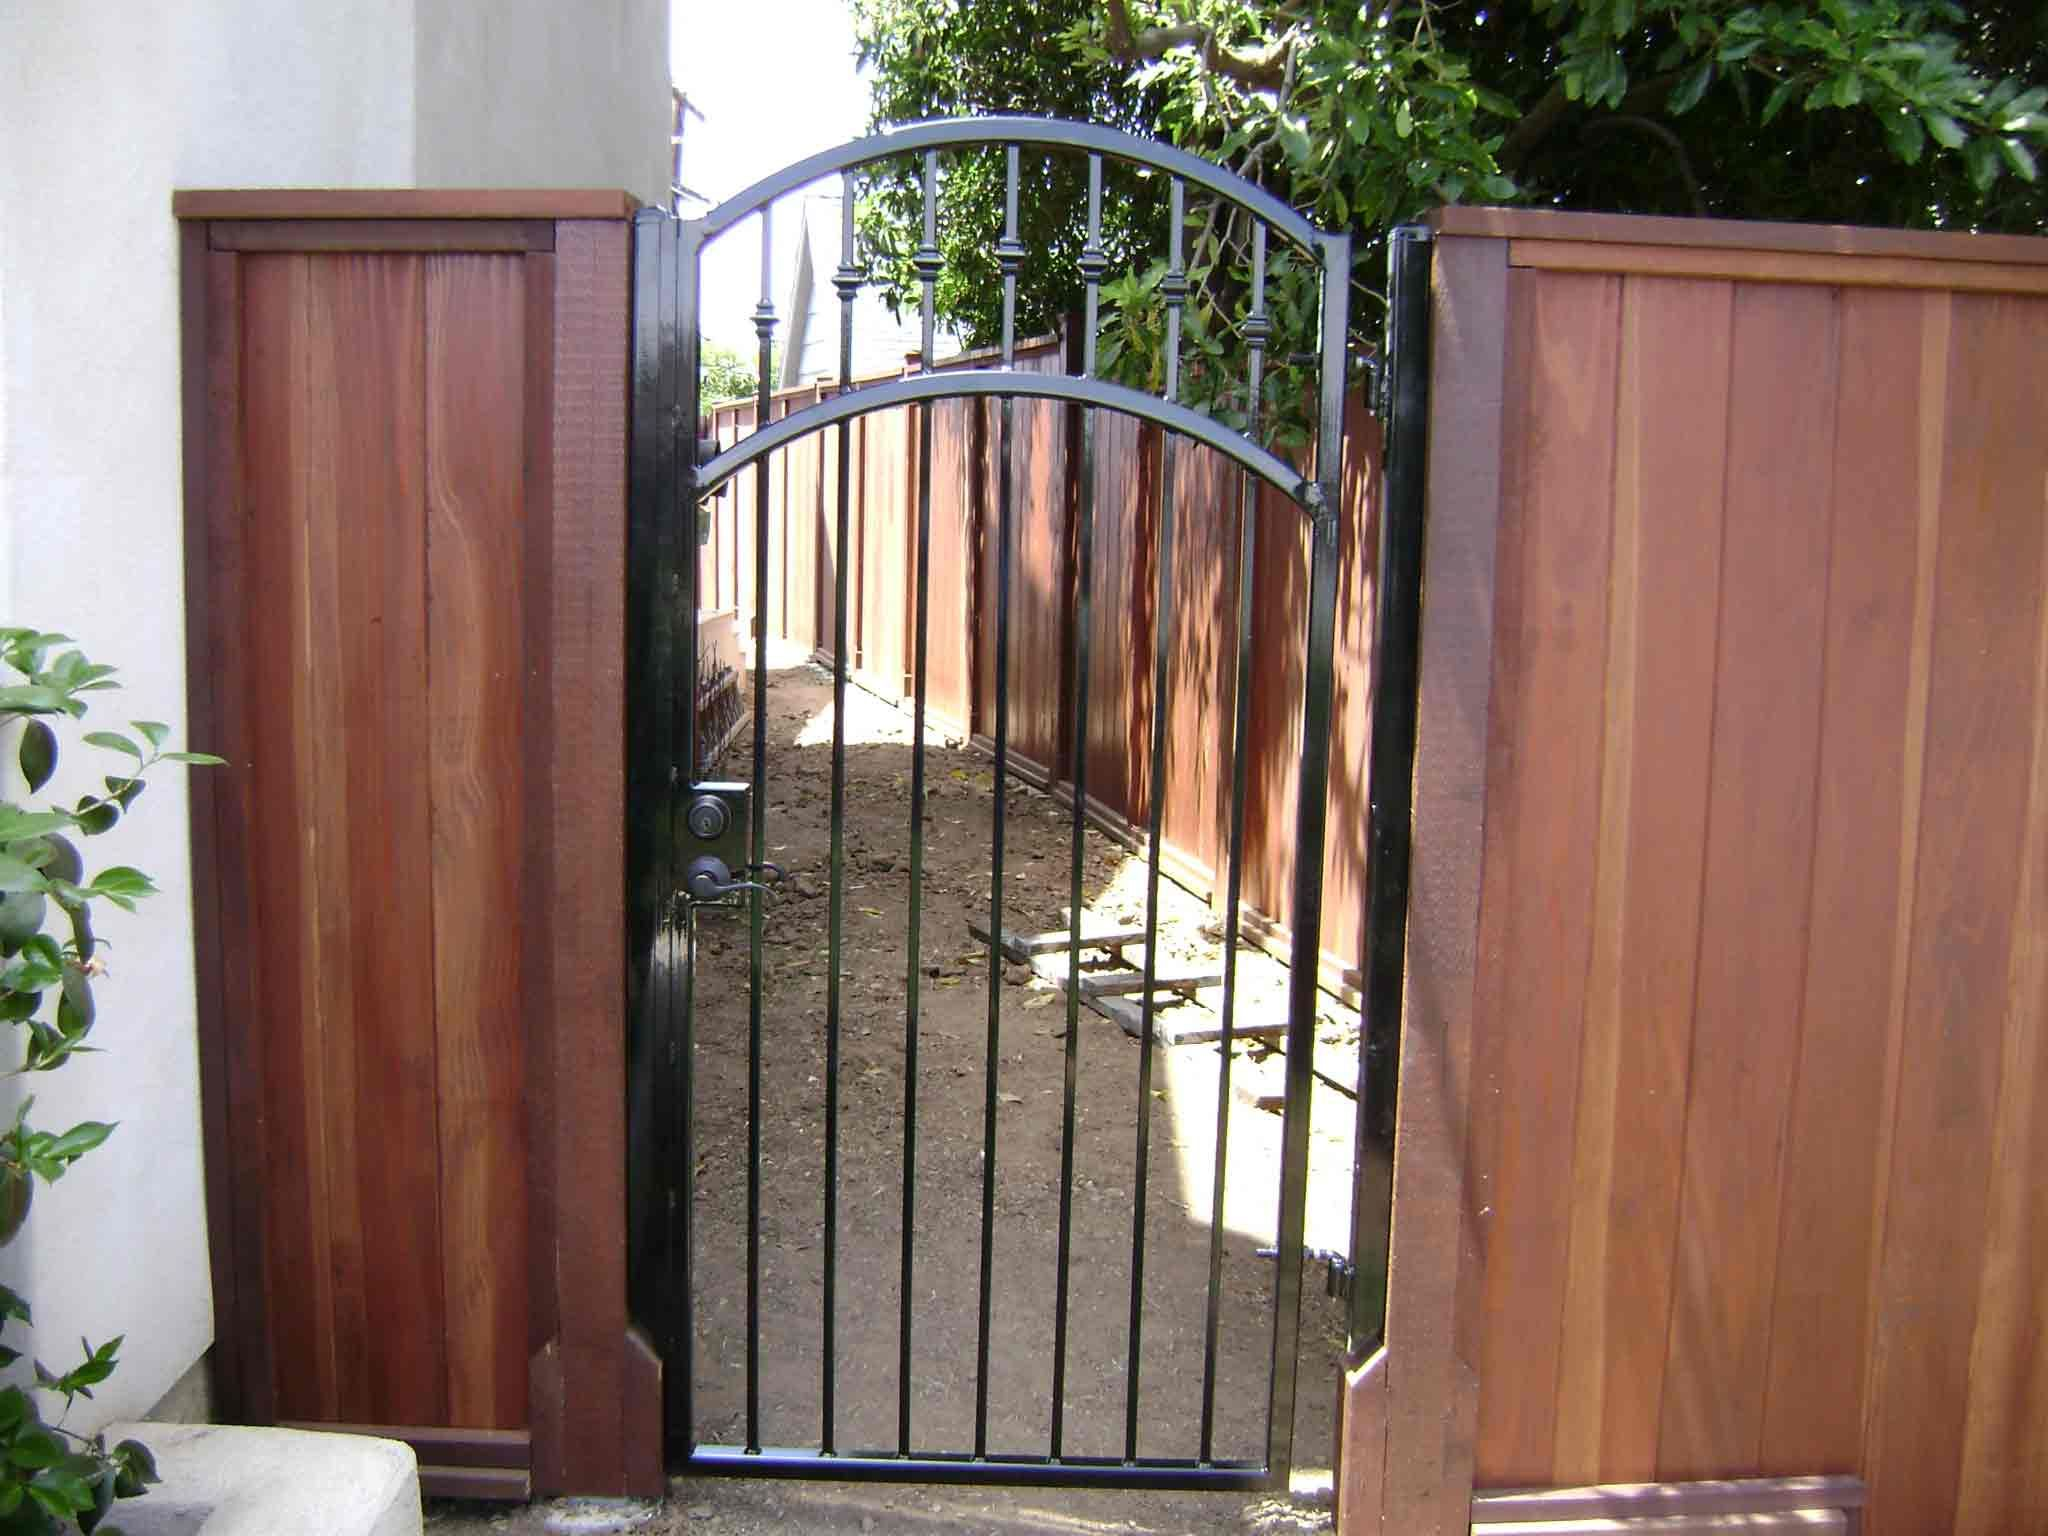 San Diego Residential Wood Amp Wrought Iron Gate Honey Do